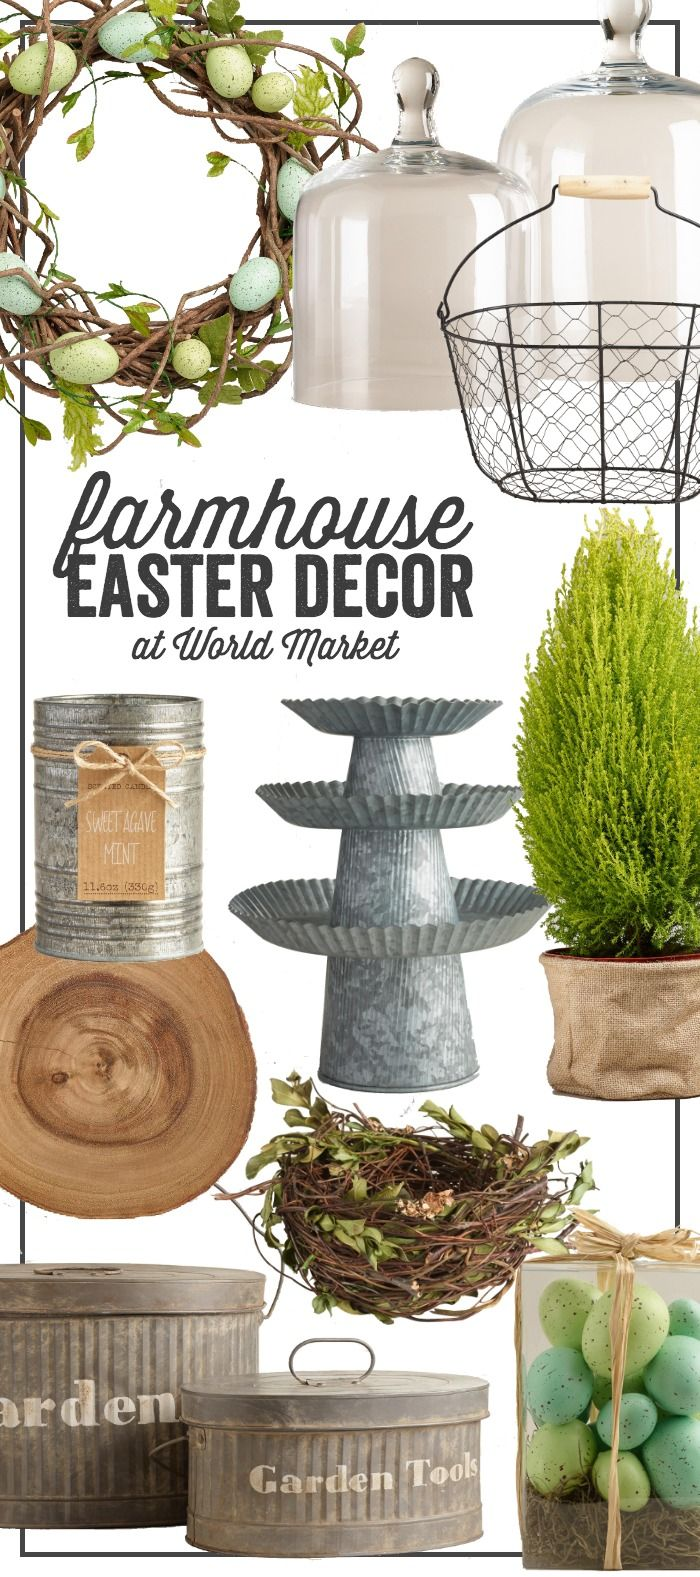 Outdoor easter decorations pinterest - Beautiful Farmhouse Easter Decor Get The Look At Cost Plus World Market Ad